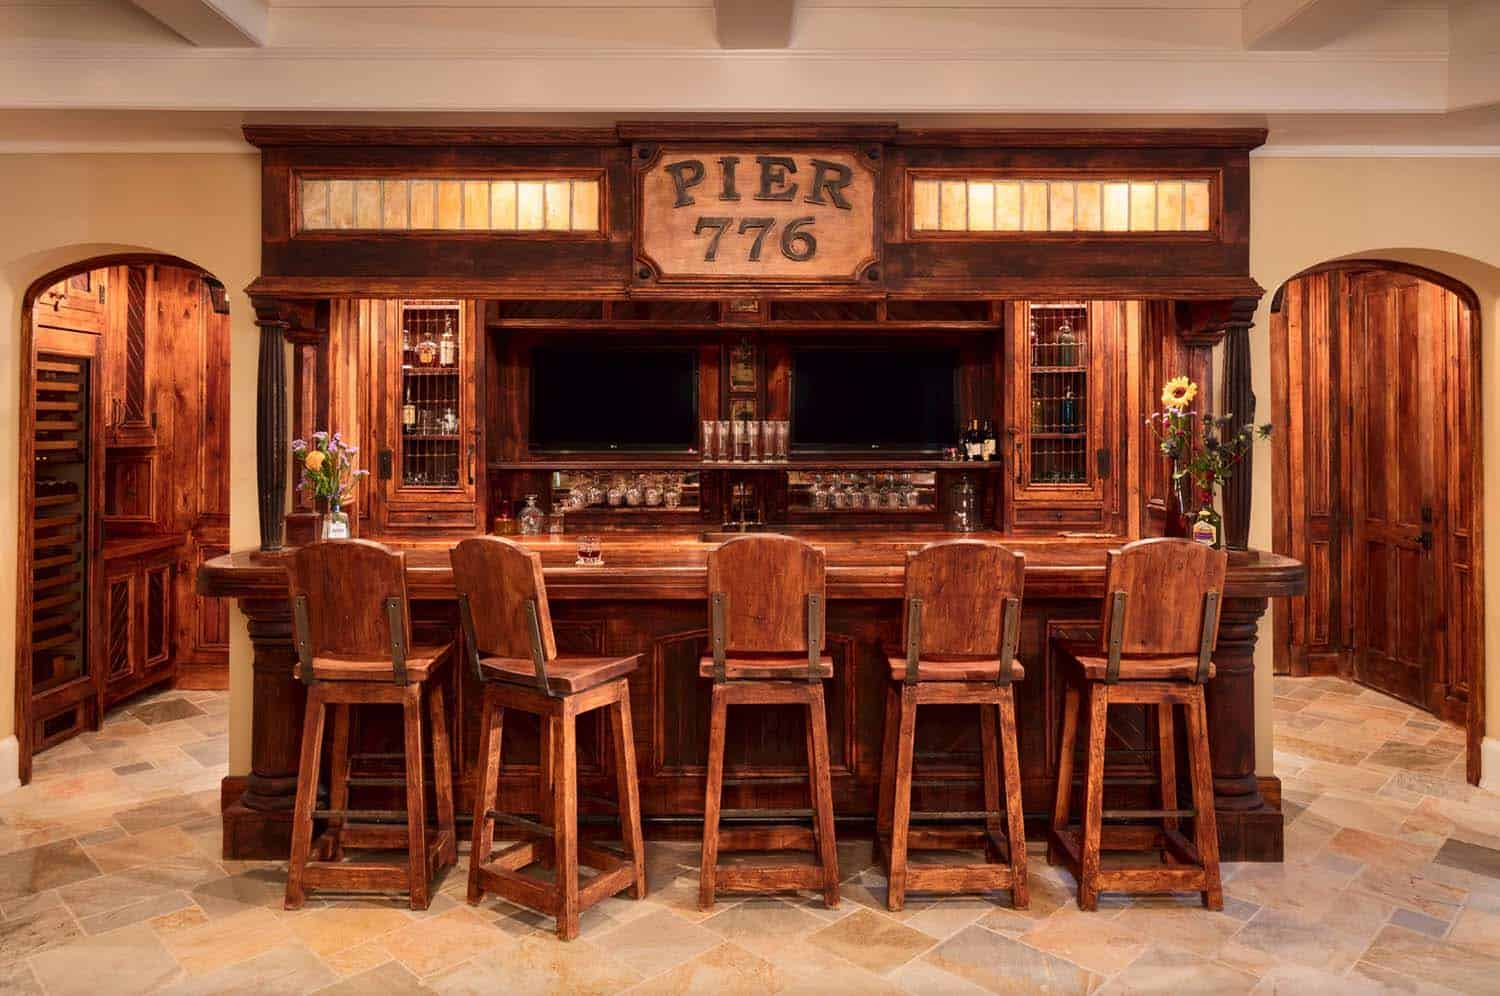 shingle-style-home-beach-style-home-bar